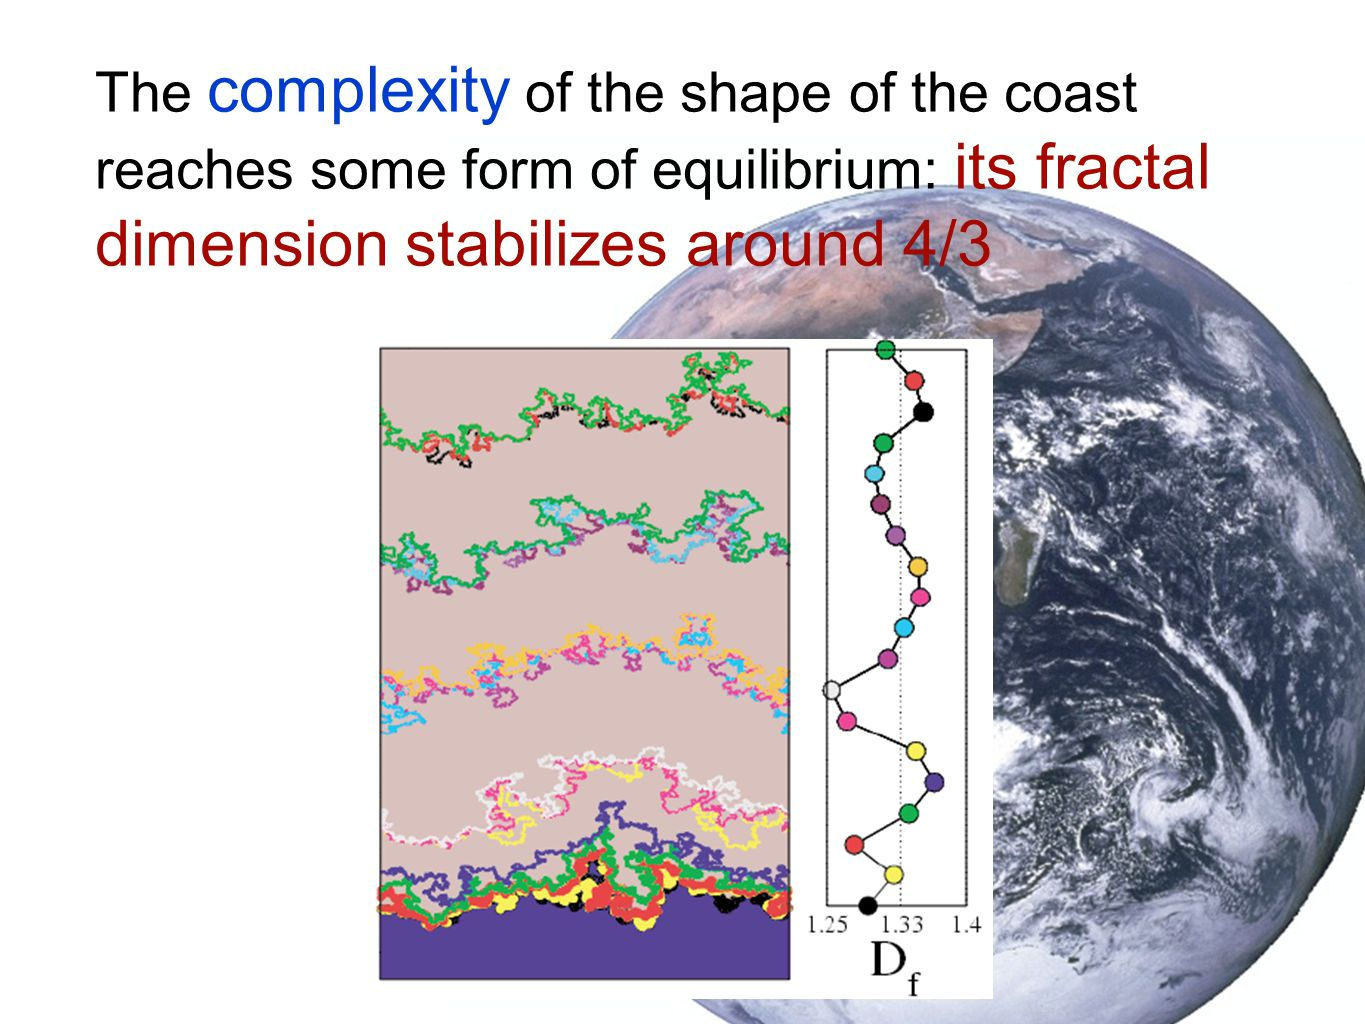 The complexity of the shape of the coast reaches some form of equilibrium: its fractal dimension stabilizes around 4/3